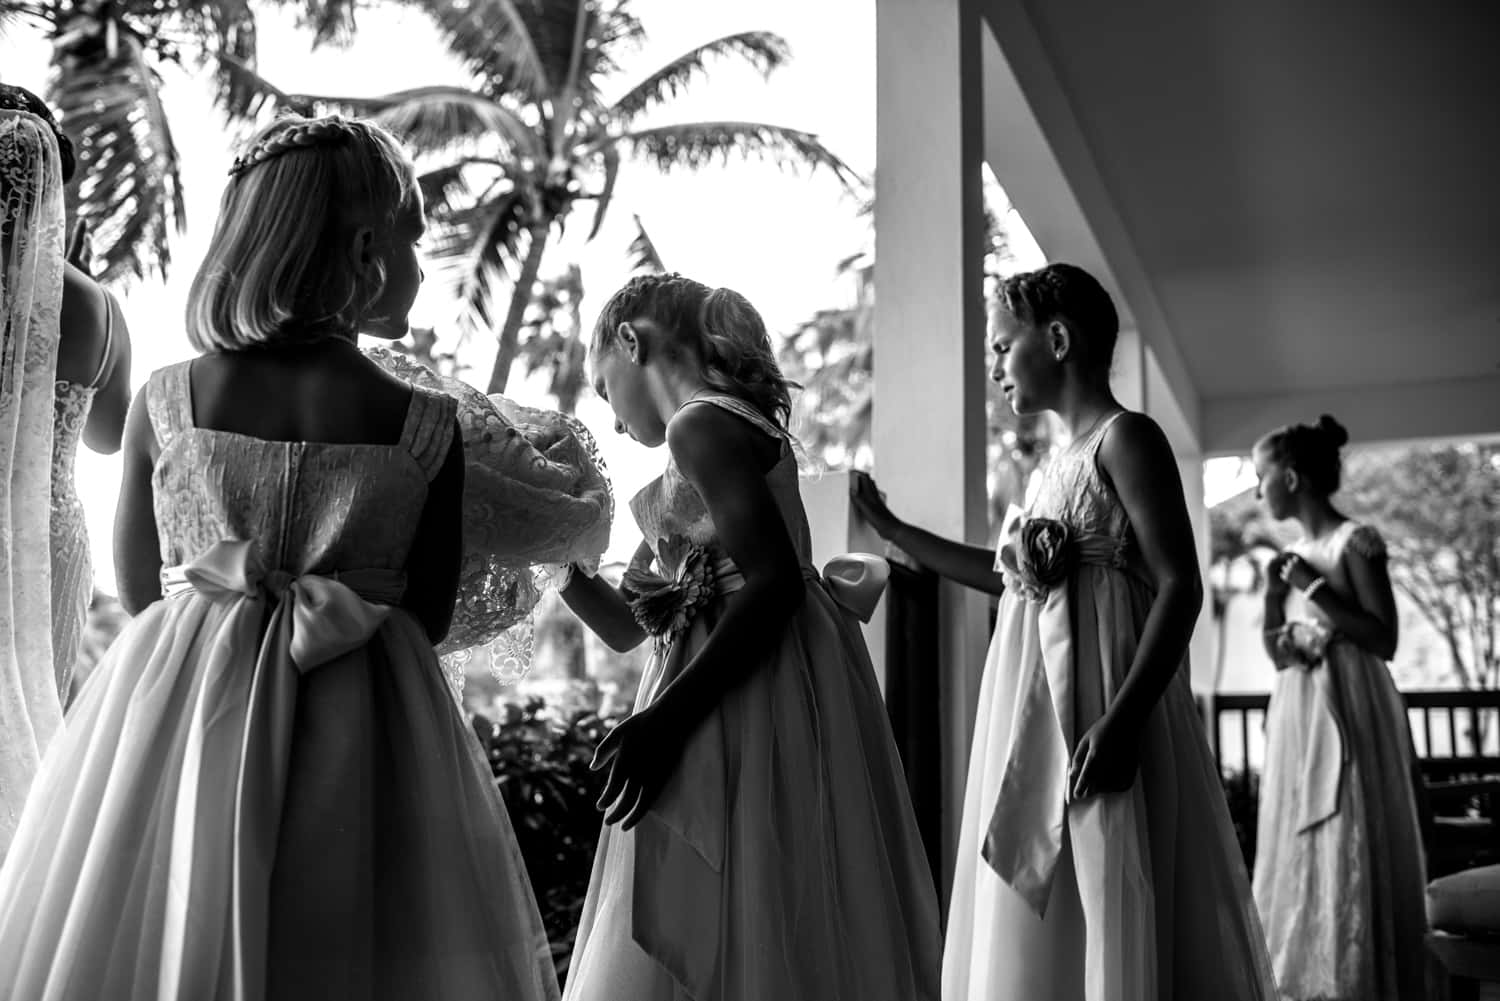 Black and white photograph of four bridesmaids leaning against an outdoor railing.